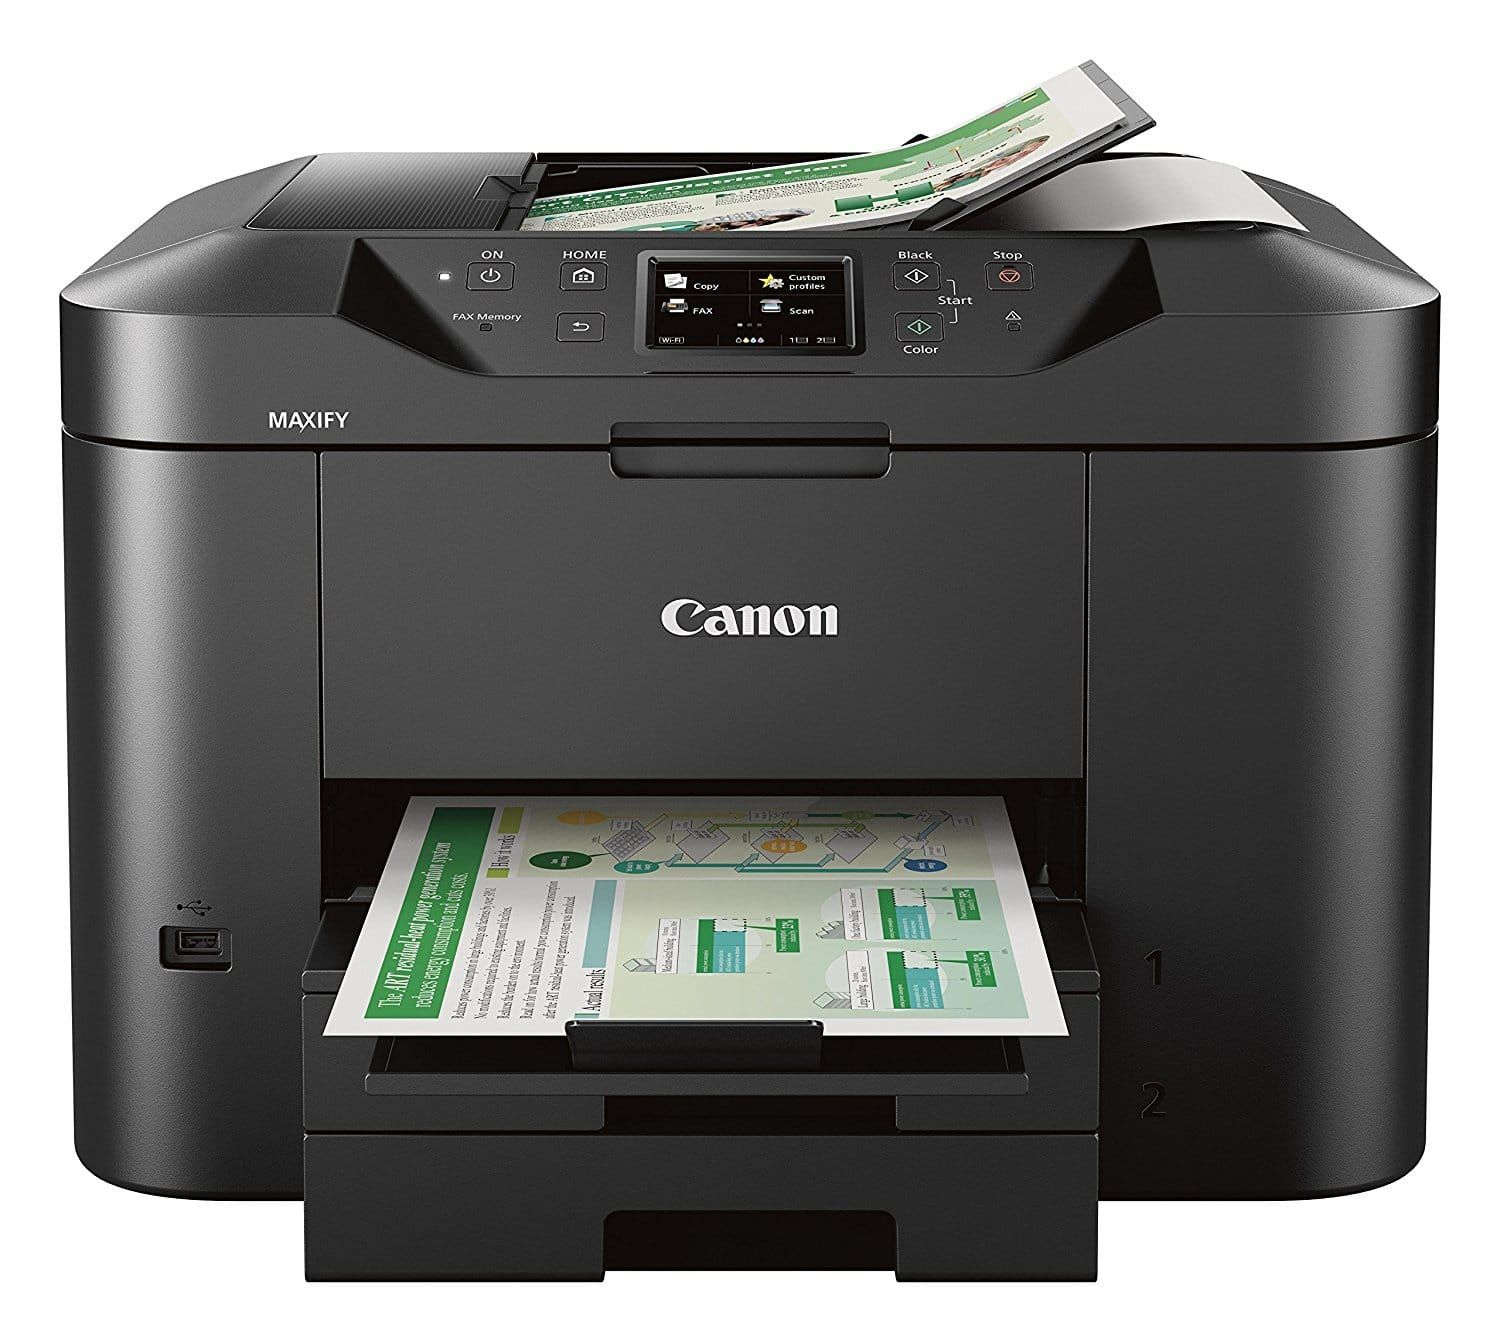 Top 10 Best Wireless Fax Machines In 2020 Hqreview Multifunction Printer Printer Driver Laser Printer